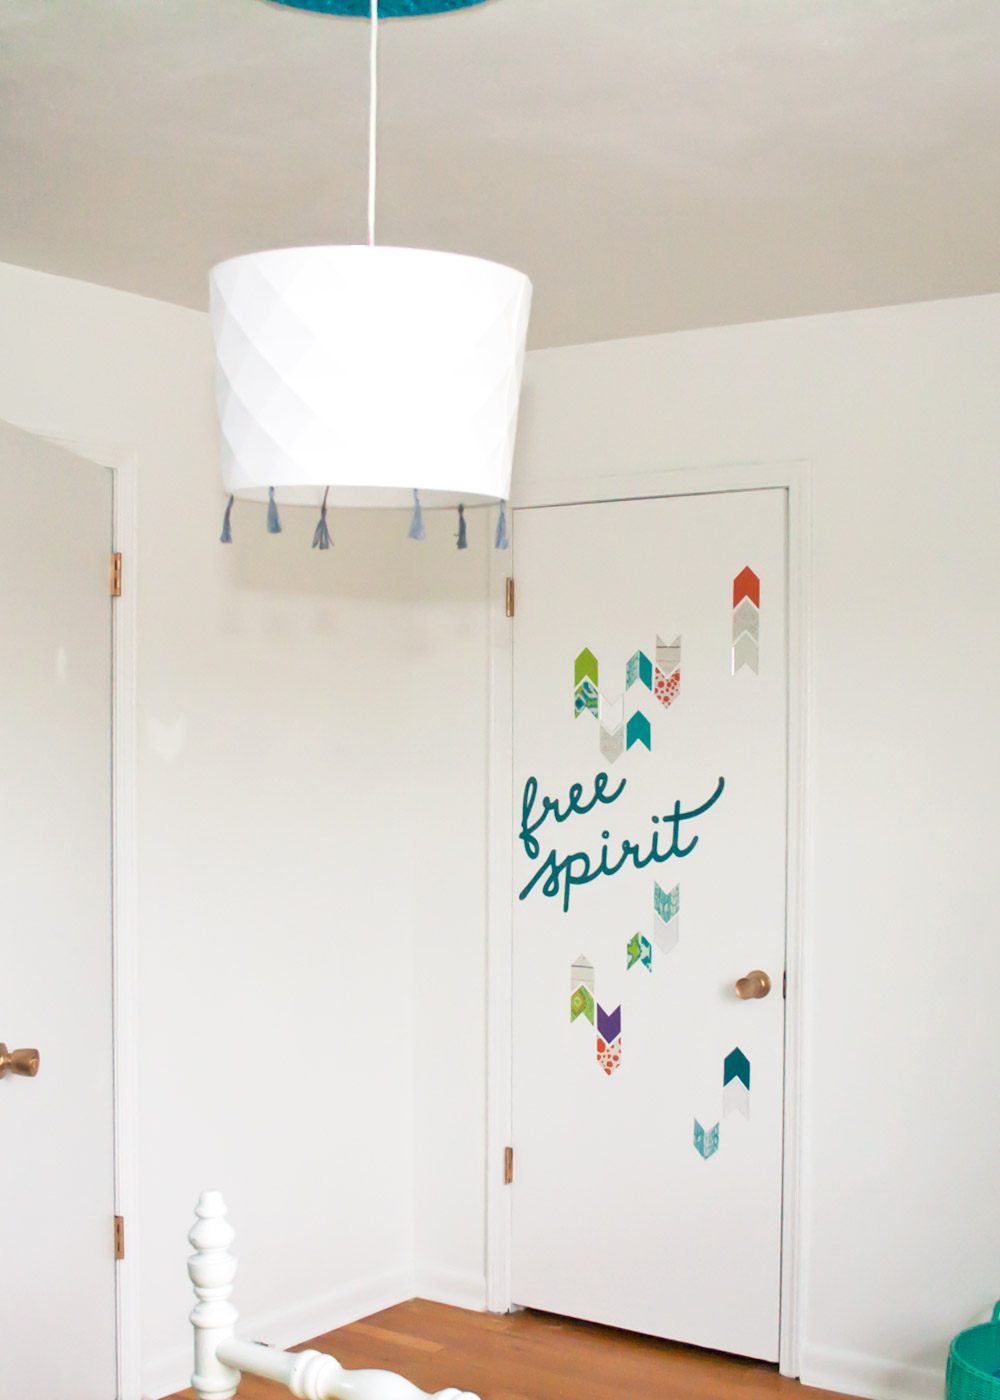 My Only Sunshine || DIY Decorative Hanging Light